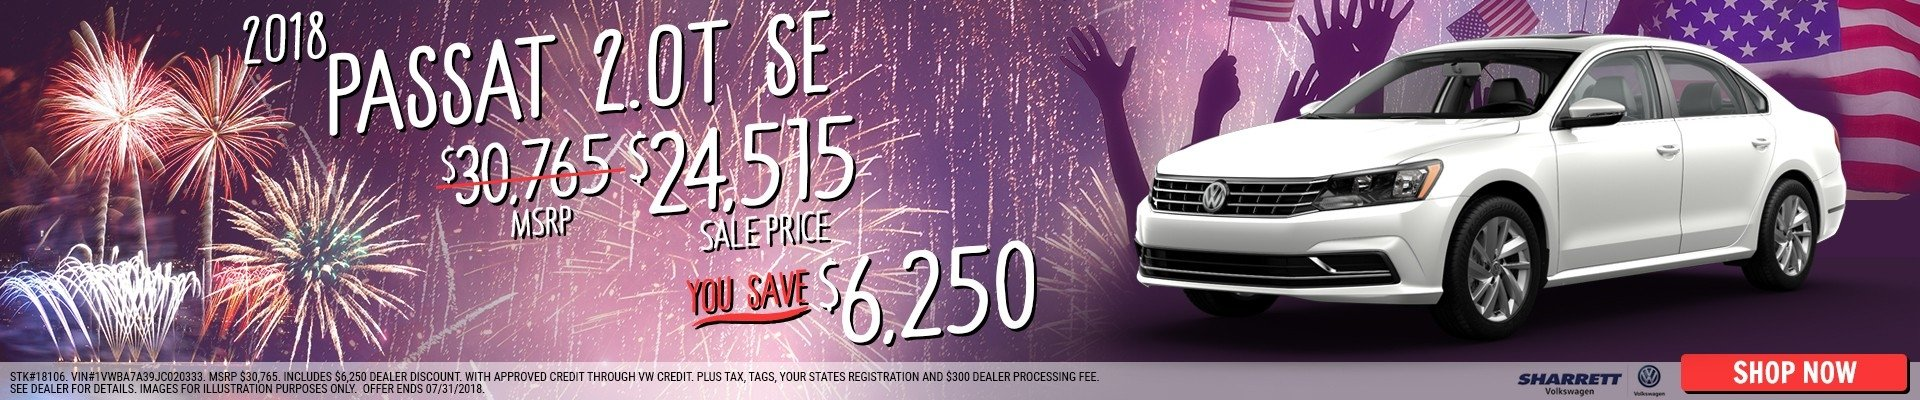 Save $6250 on a new 2018 Volkswagen Passat SE